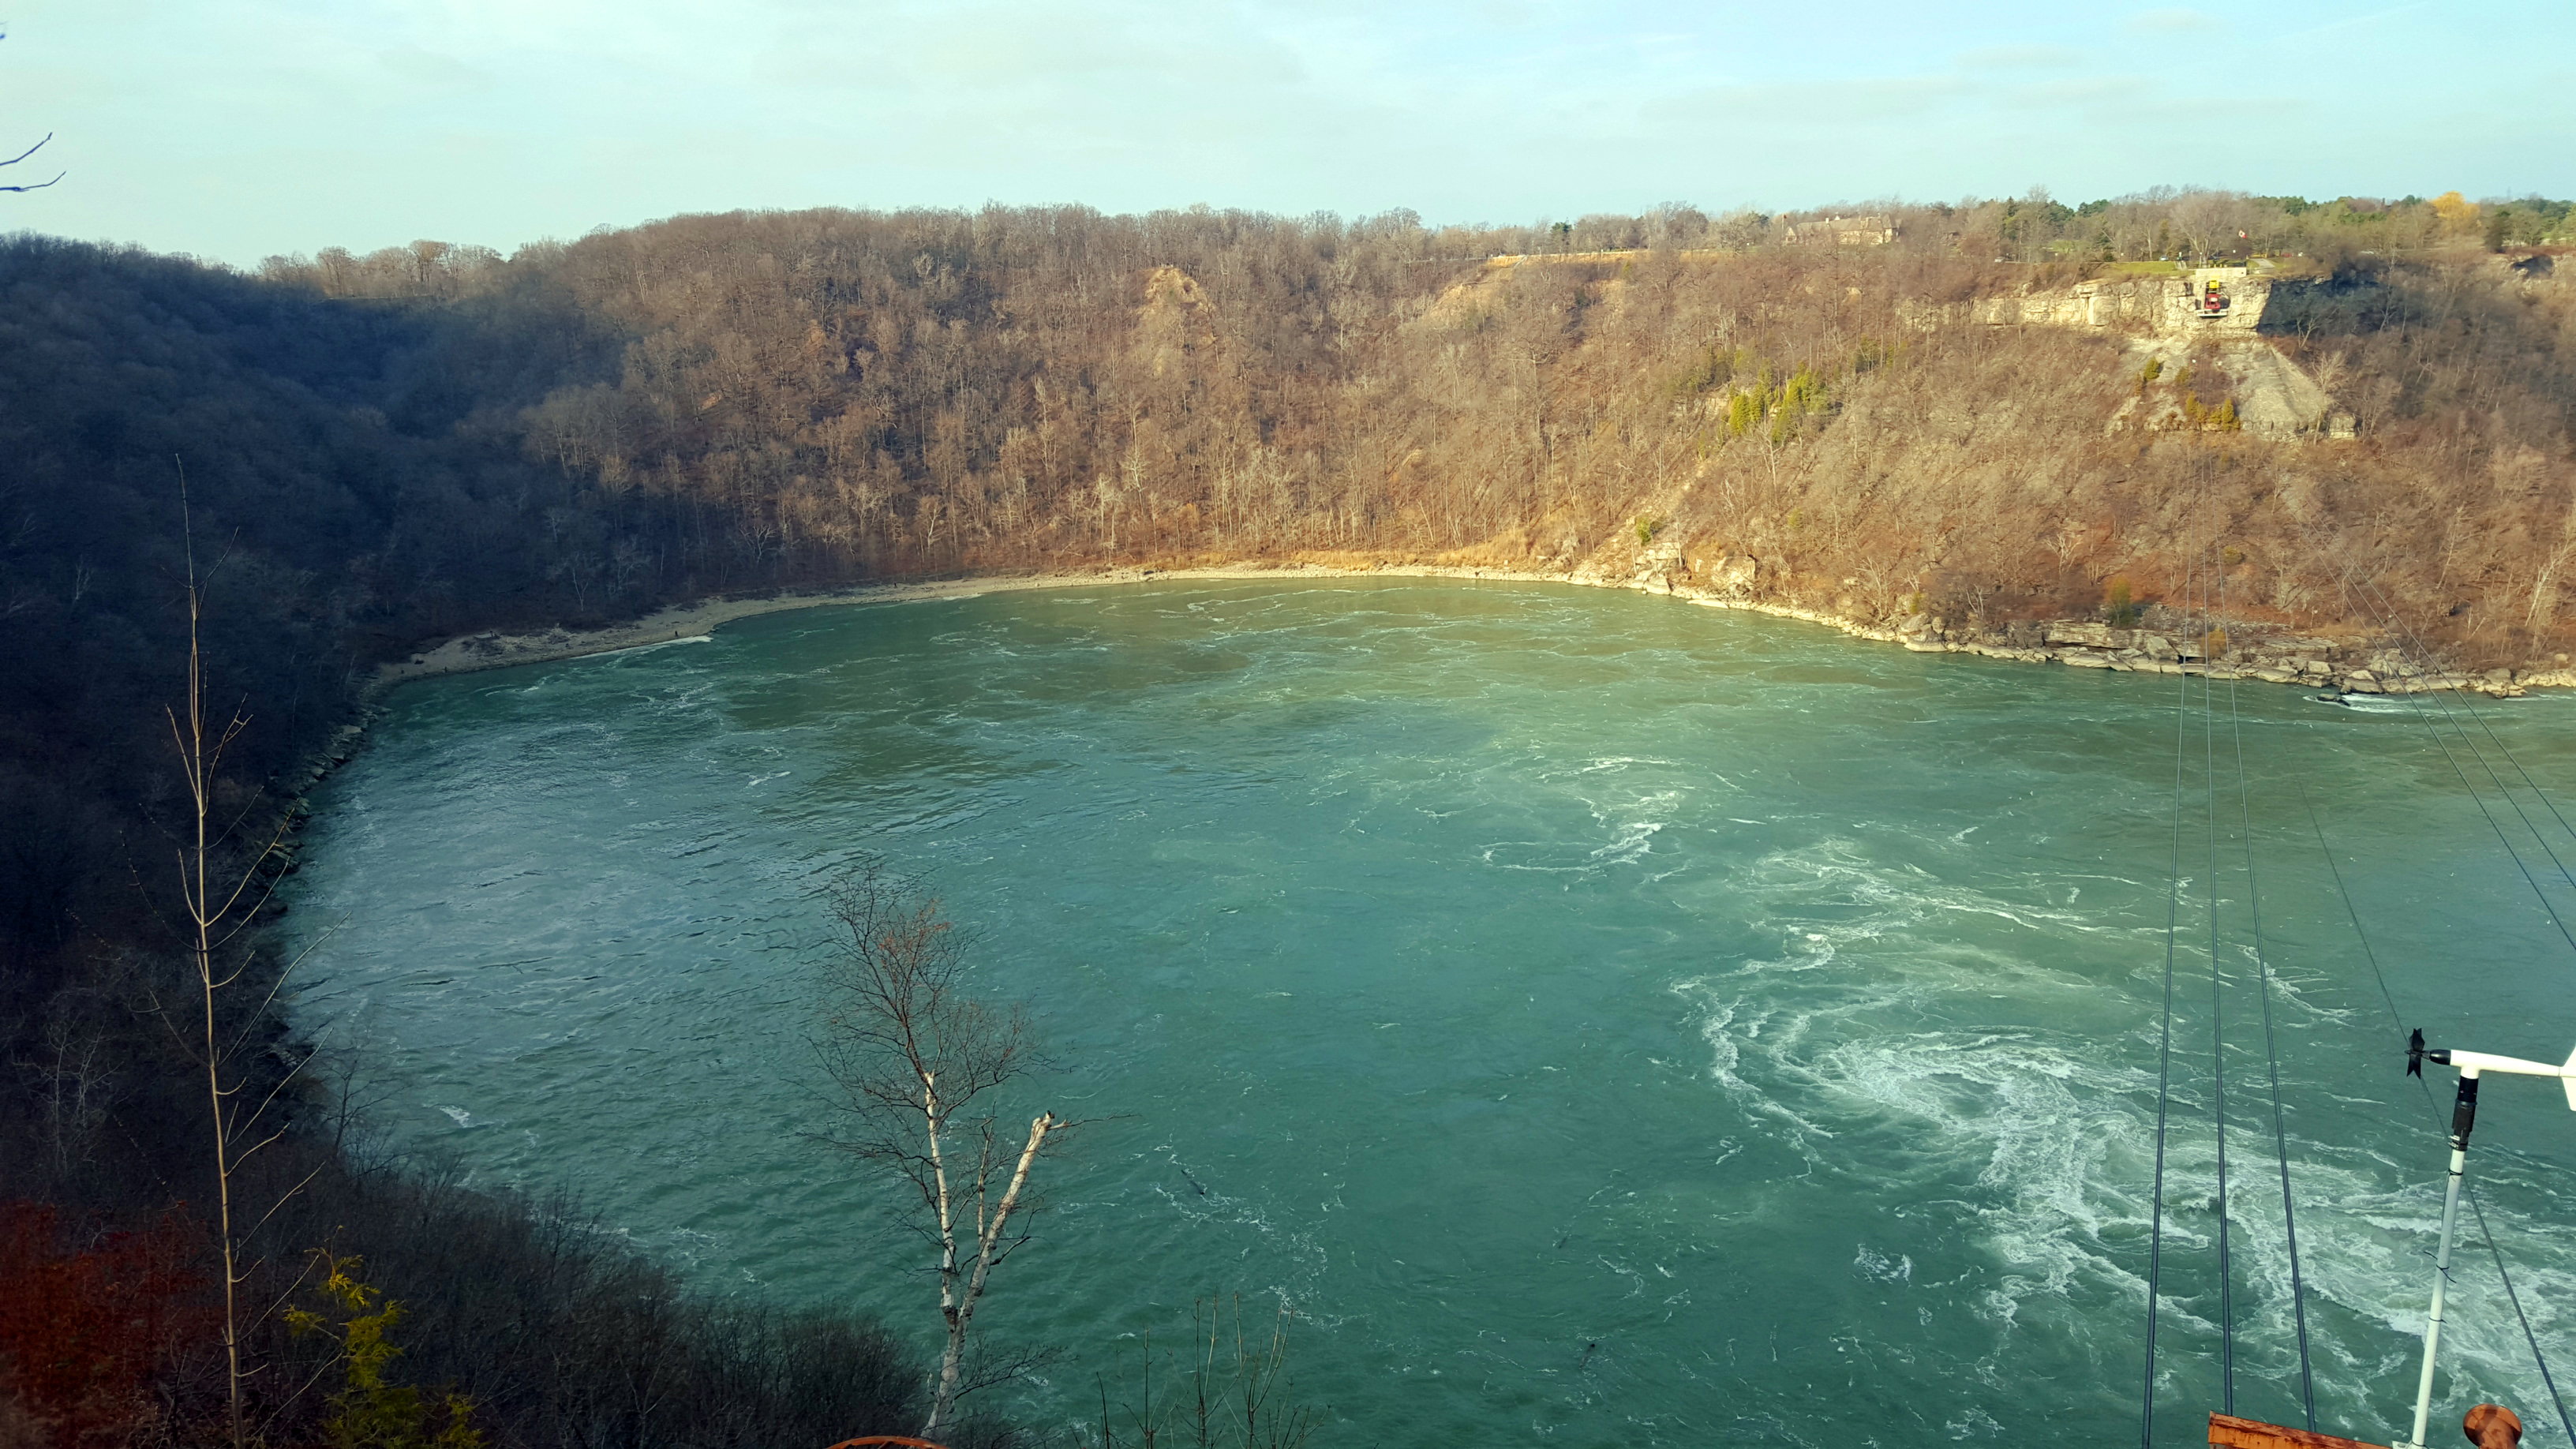 Whirlpool at Niagara Falls